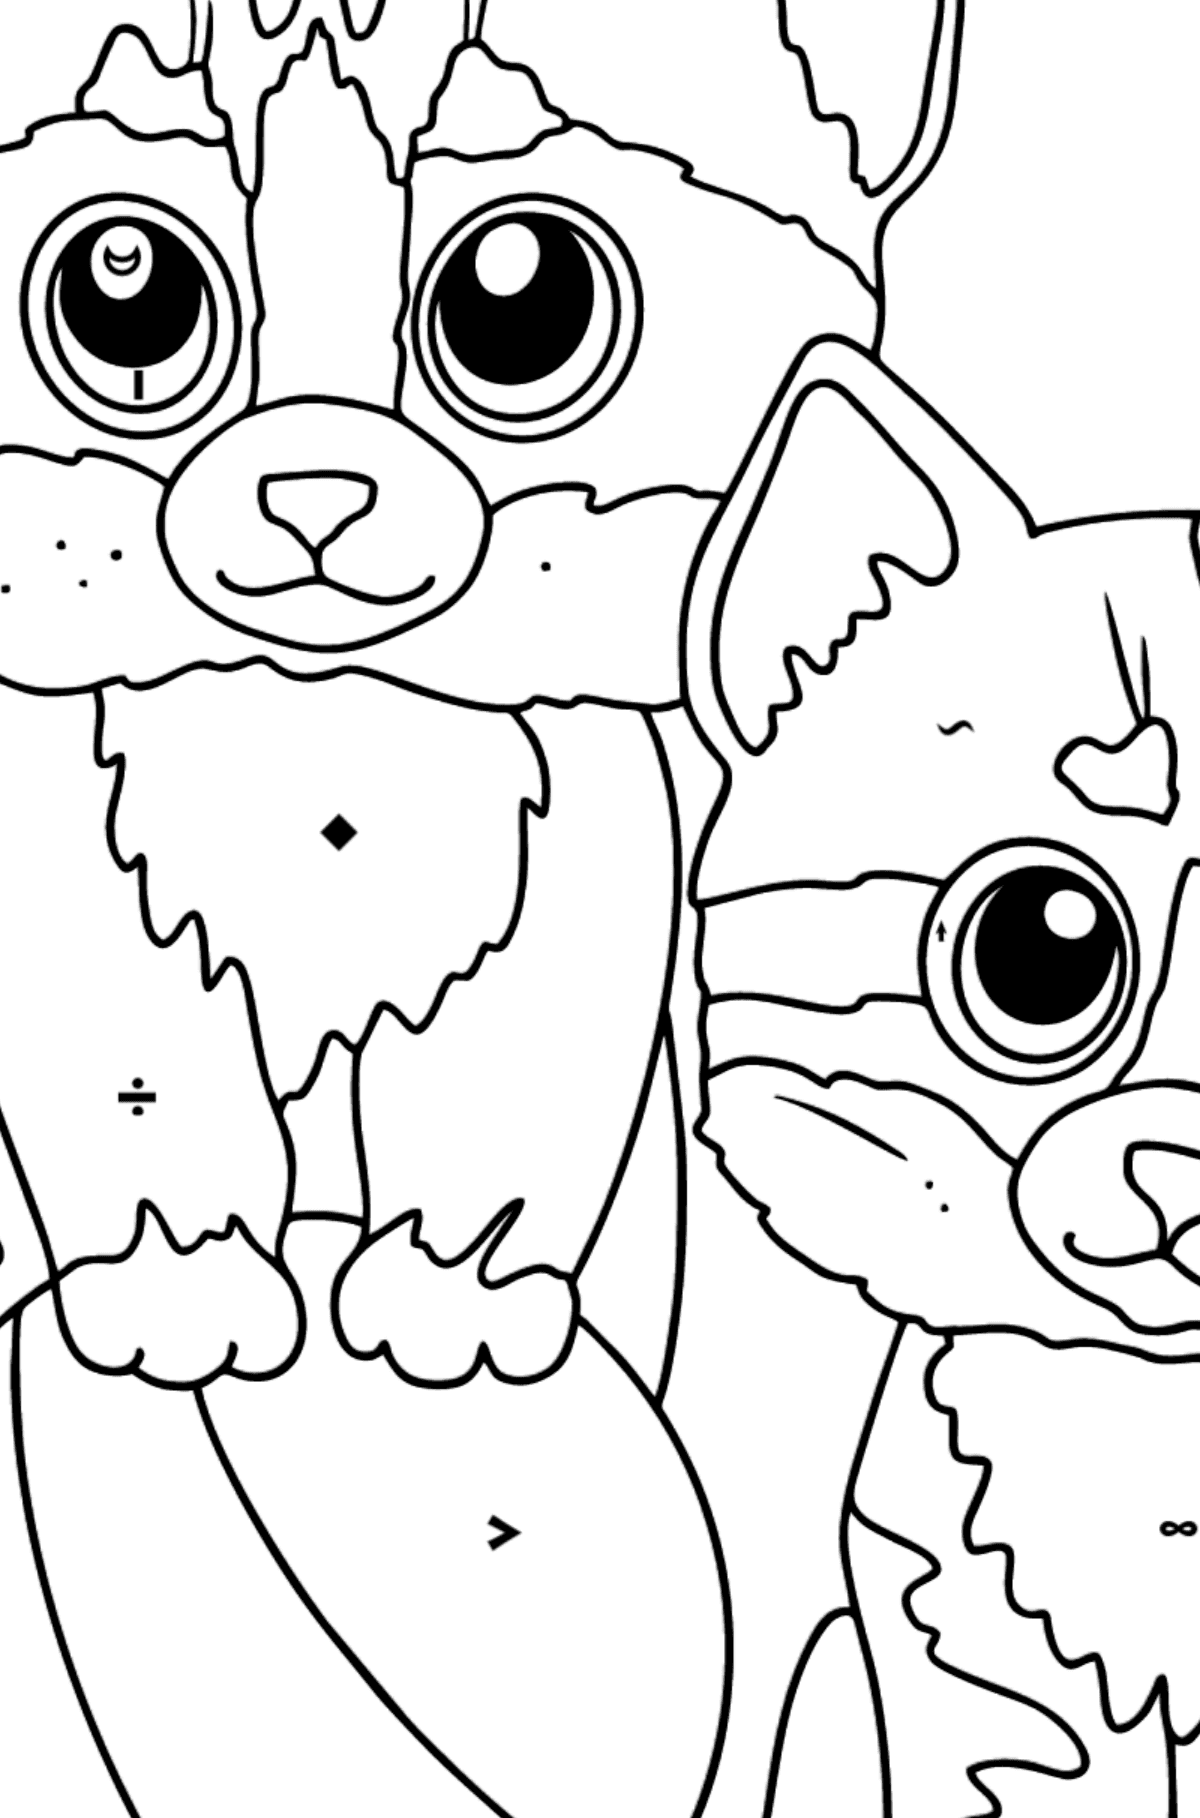 Coloring Page - Two Friendly Kittens Playing with a Ball - Coloring by Symbols for Kids